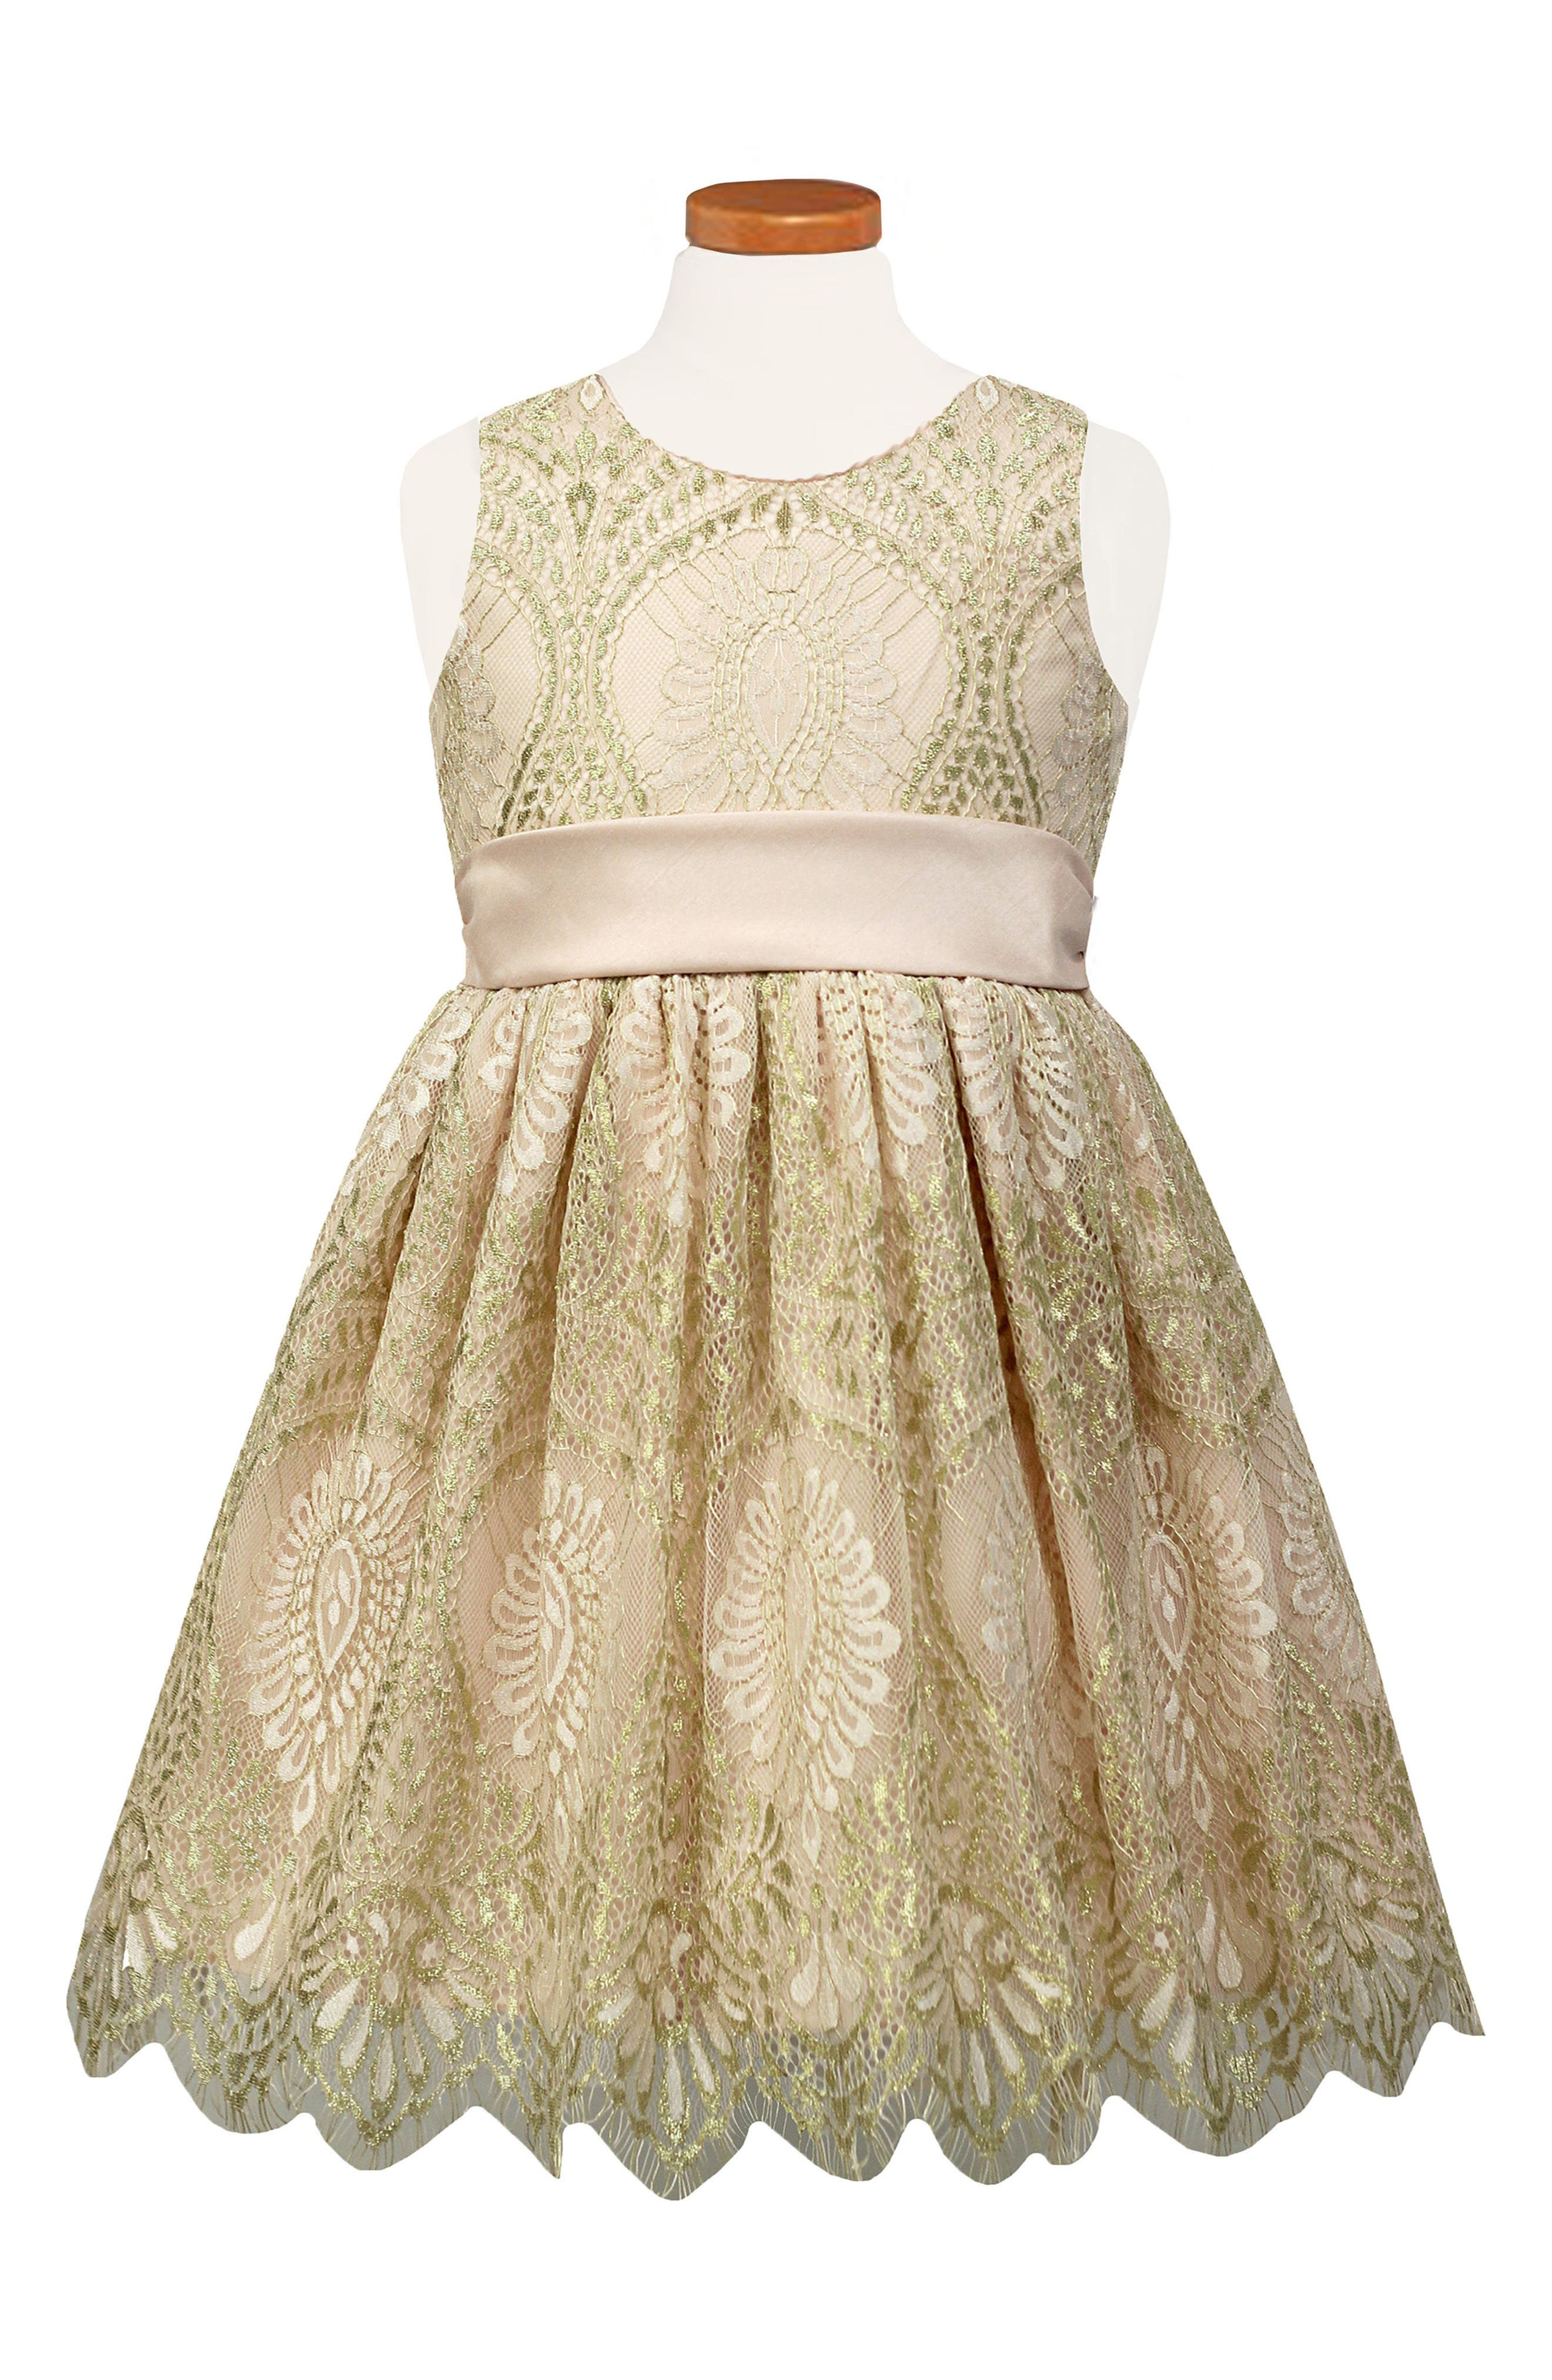 Sorbet Embroidered Lace Fit & Flare Dress (Toddler Girls & Little Girls)